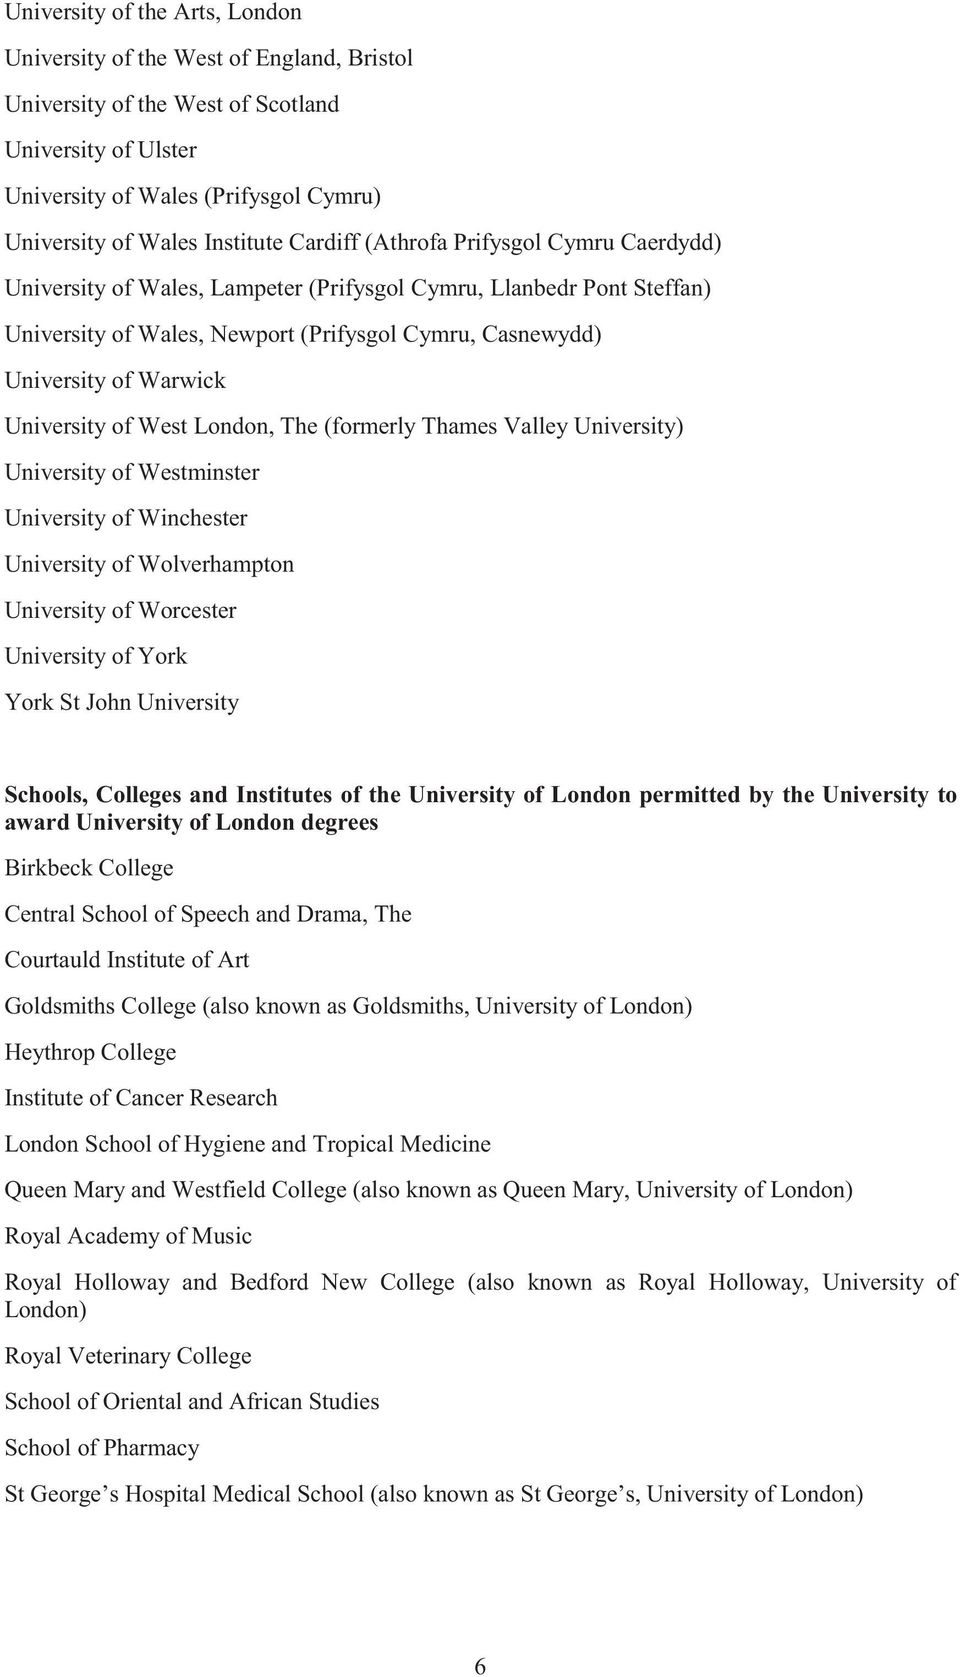 University of West London, The (formerly Thames Valley University) University of Westminster University of Winchester University of Wolverhampton University of Worcester University of York York St